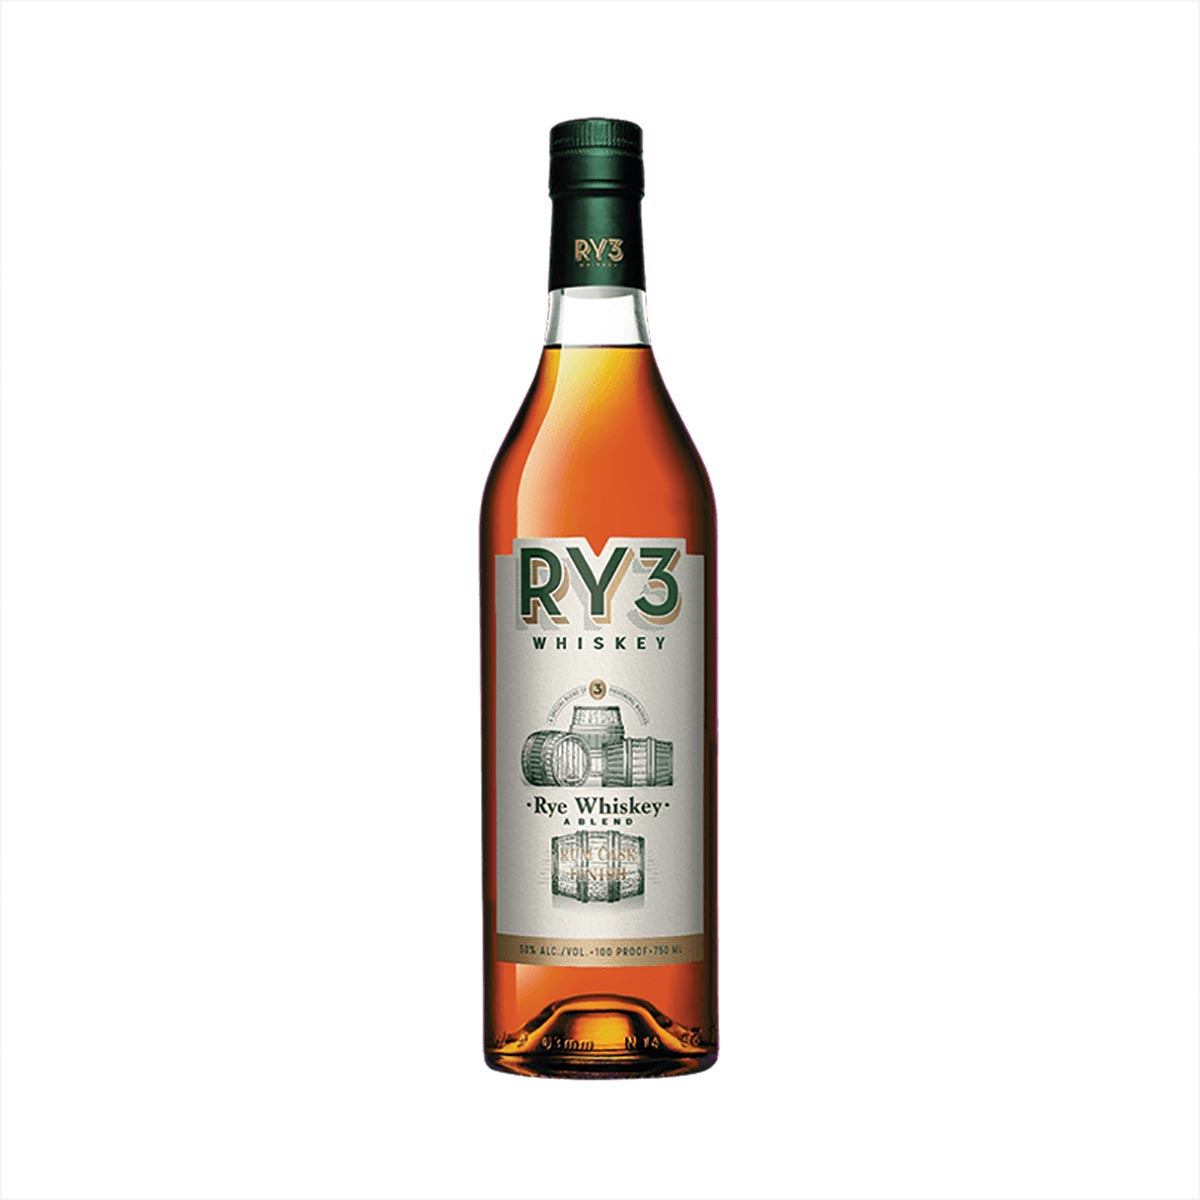 Brescome Barton Welcomes New RY3 Whiskey